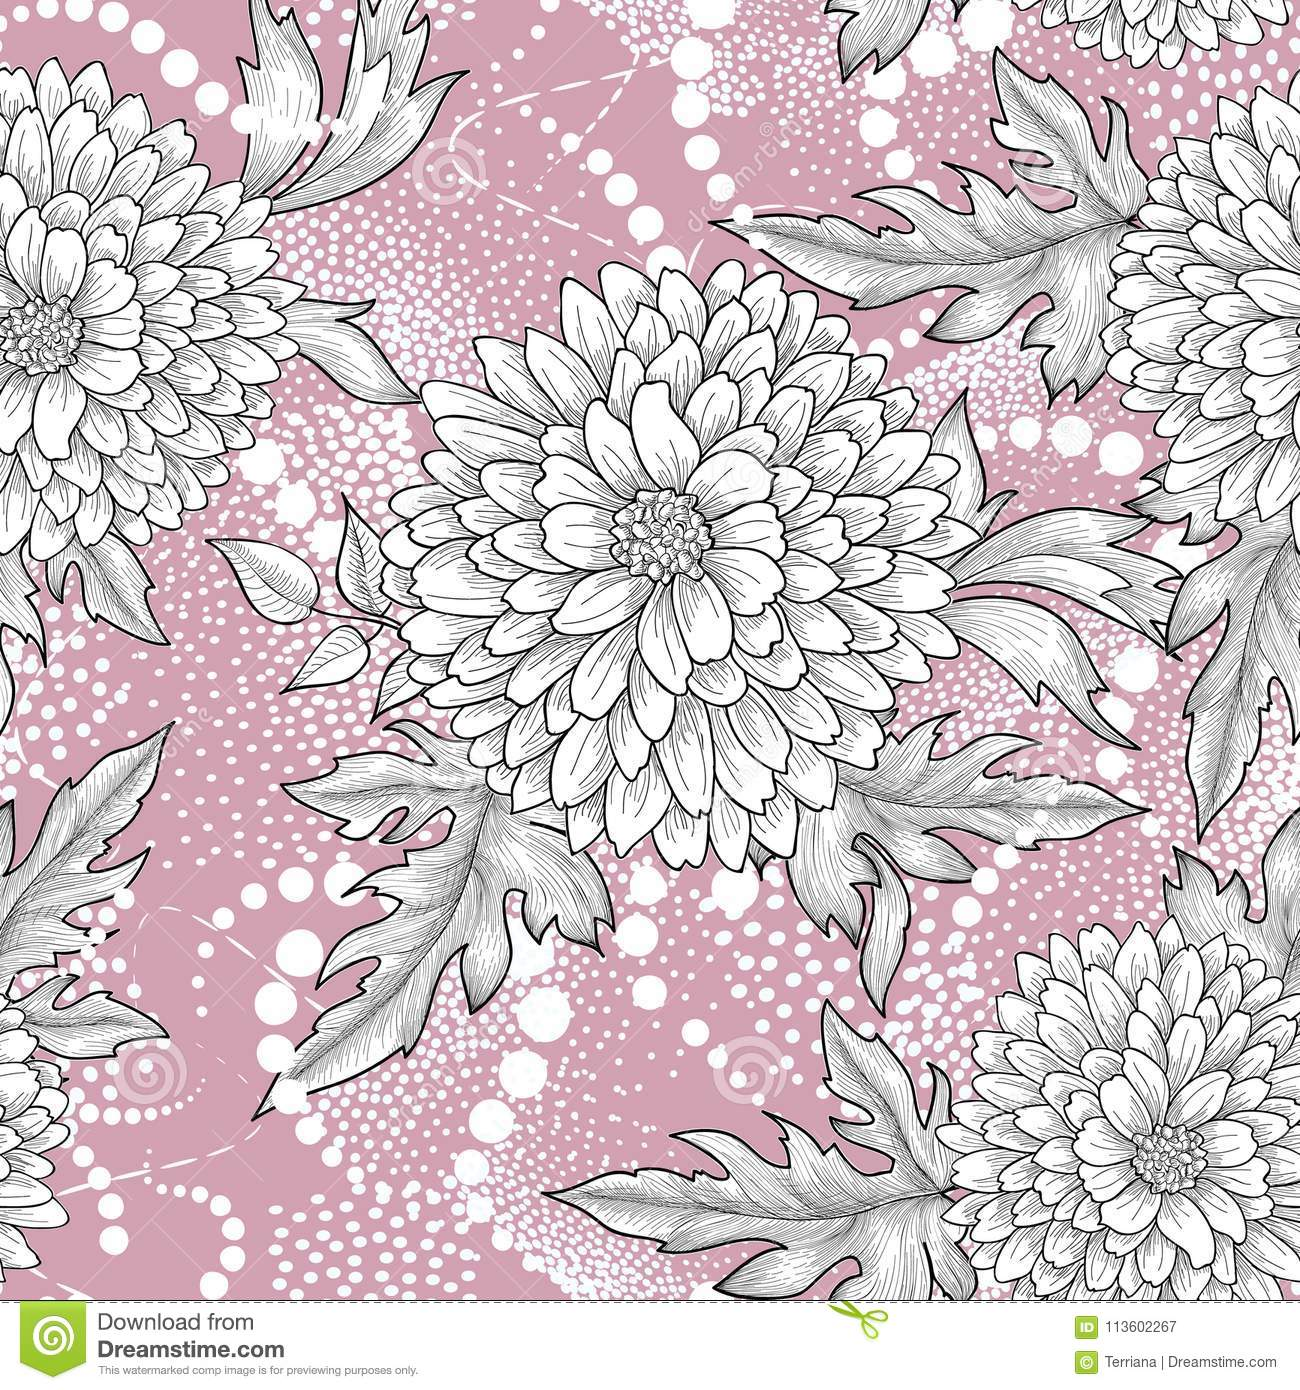 Floral seamless pattern. Abstract ornamental flower background